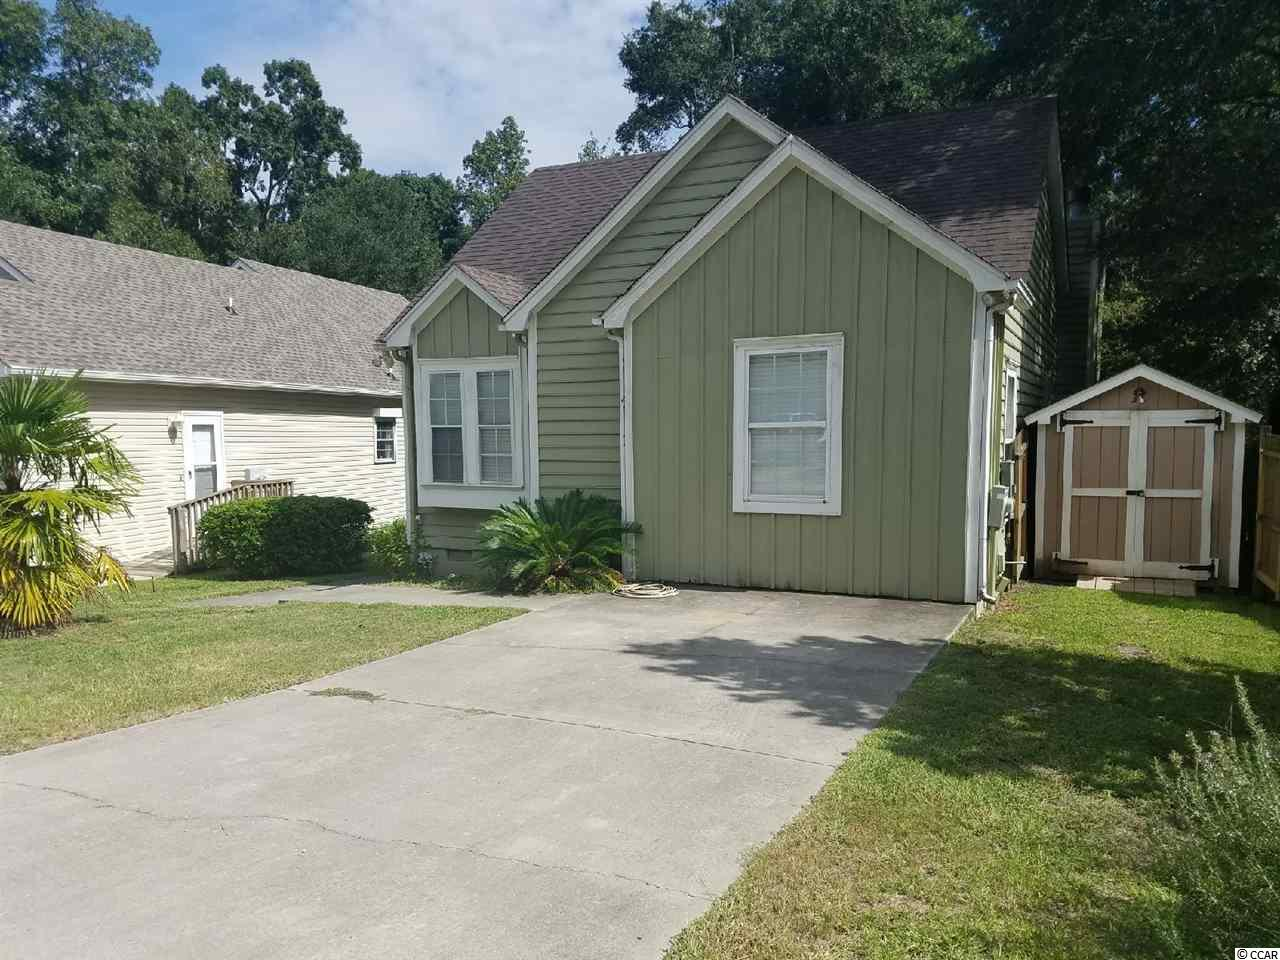 Single Family Home for Sale at 1695 Carriage Lane 1695 Carriage Lane Little River, South Carolina 29566 United States